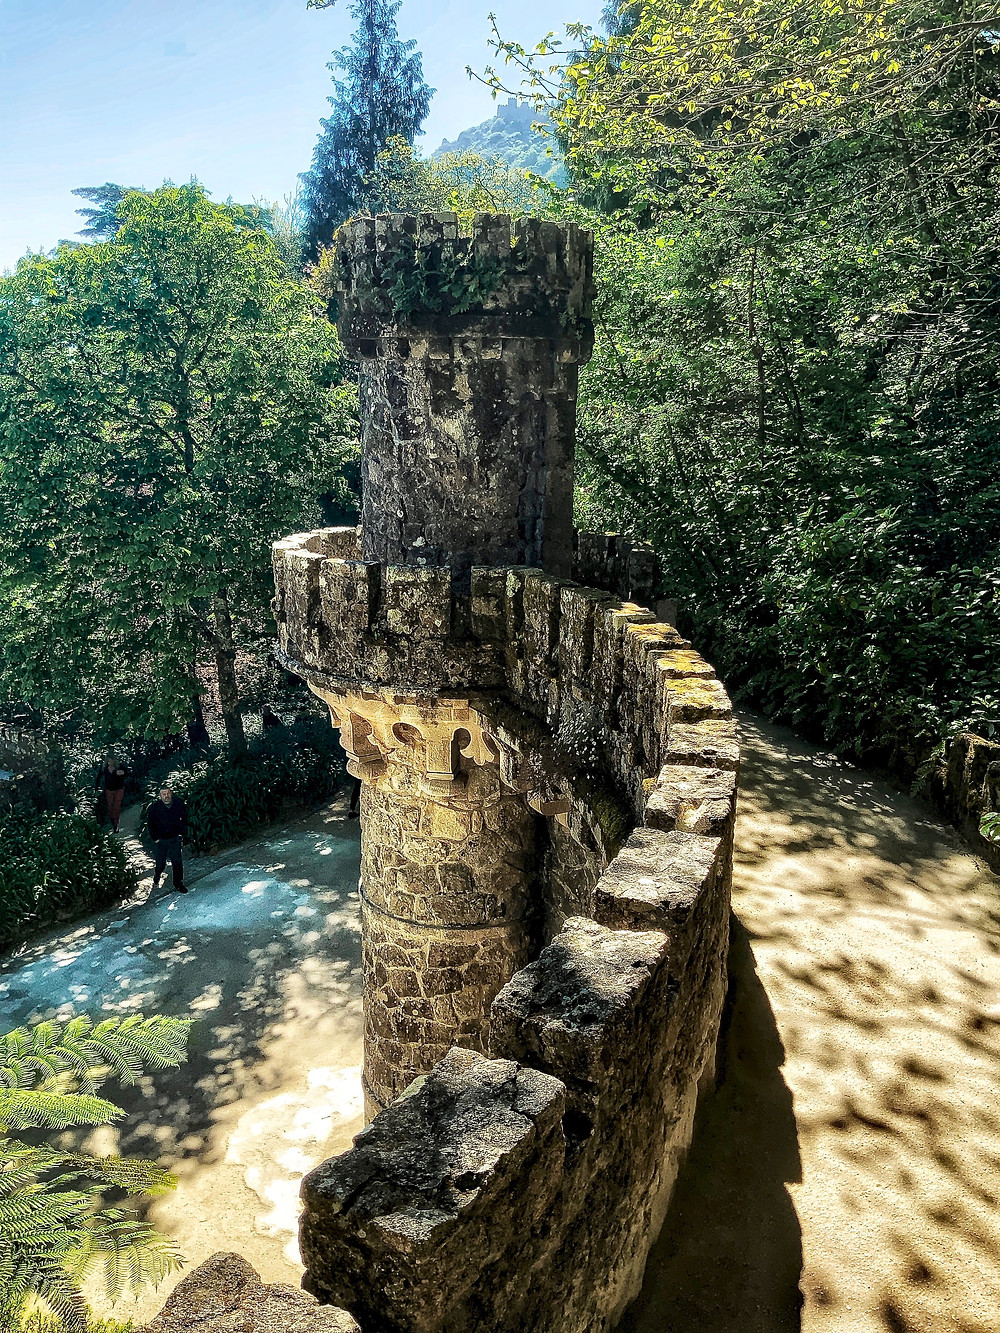 the Tower of Regaleira, with a good view from the top of Sintra and the Moorish Castle